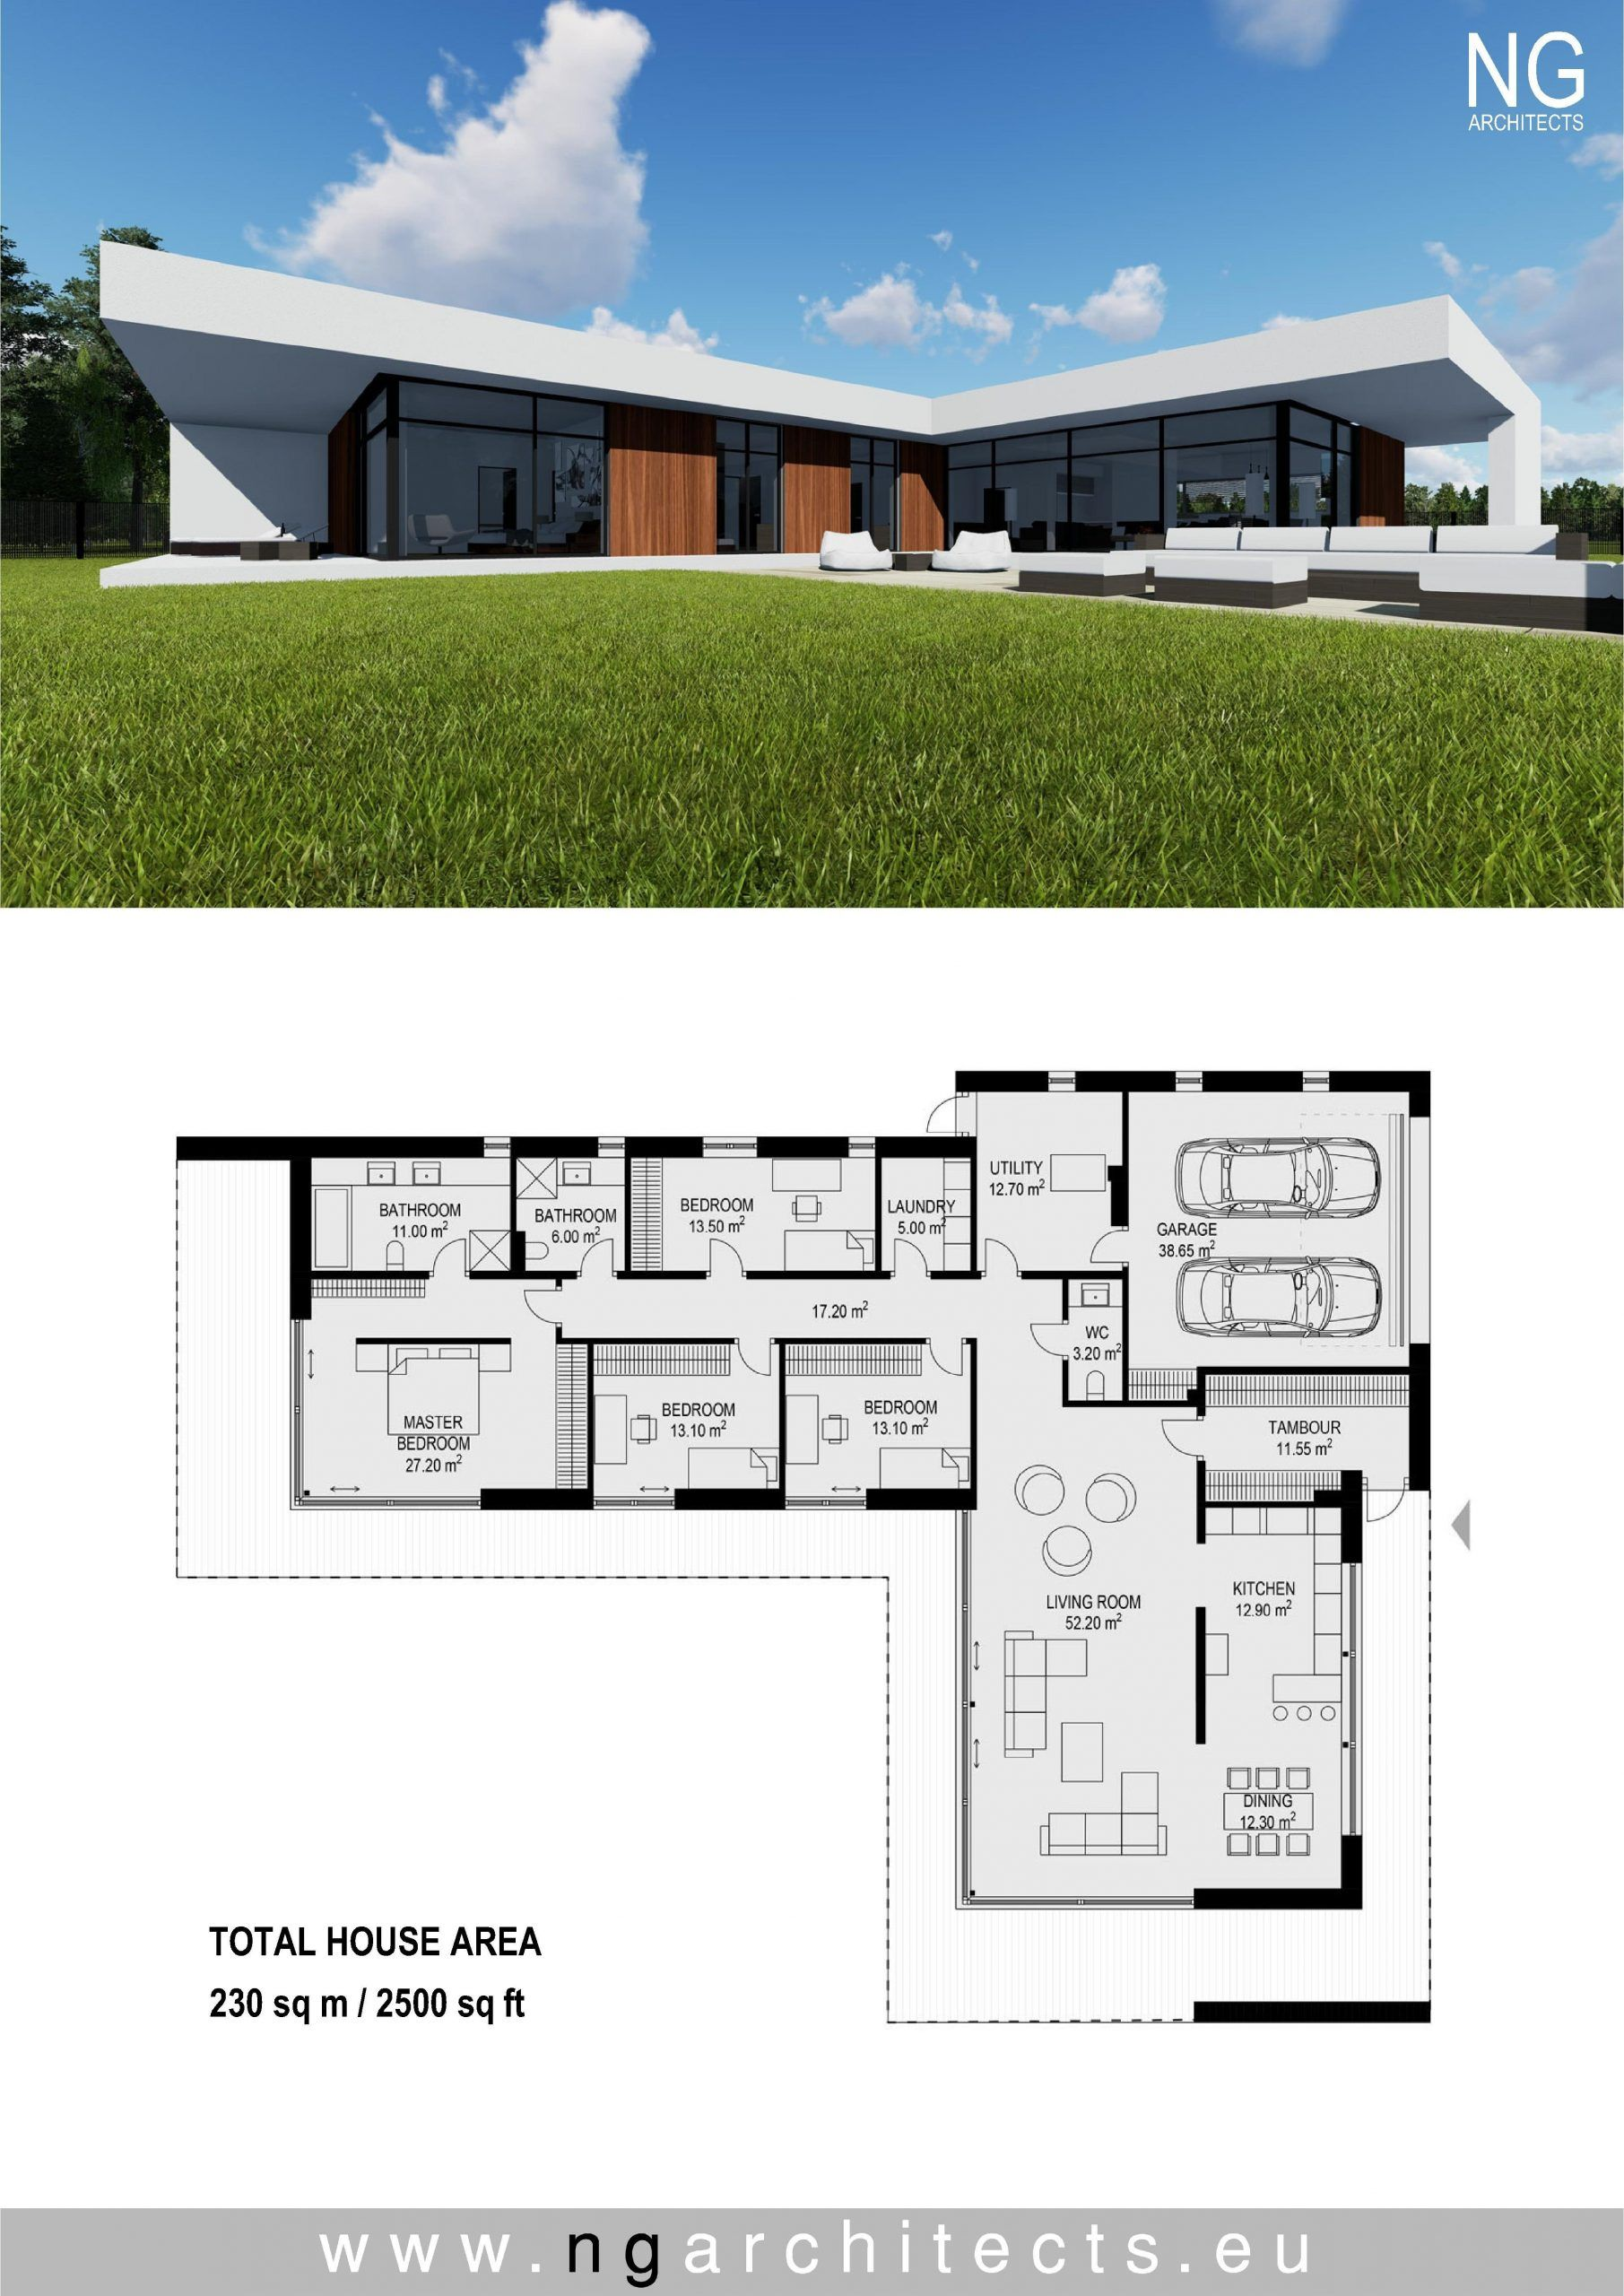 L Shaped House Plans Modern 2021 Modern Villa Design Architecture Modern House Plans